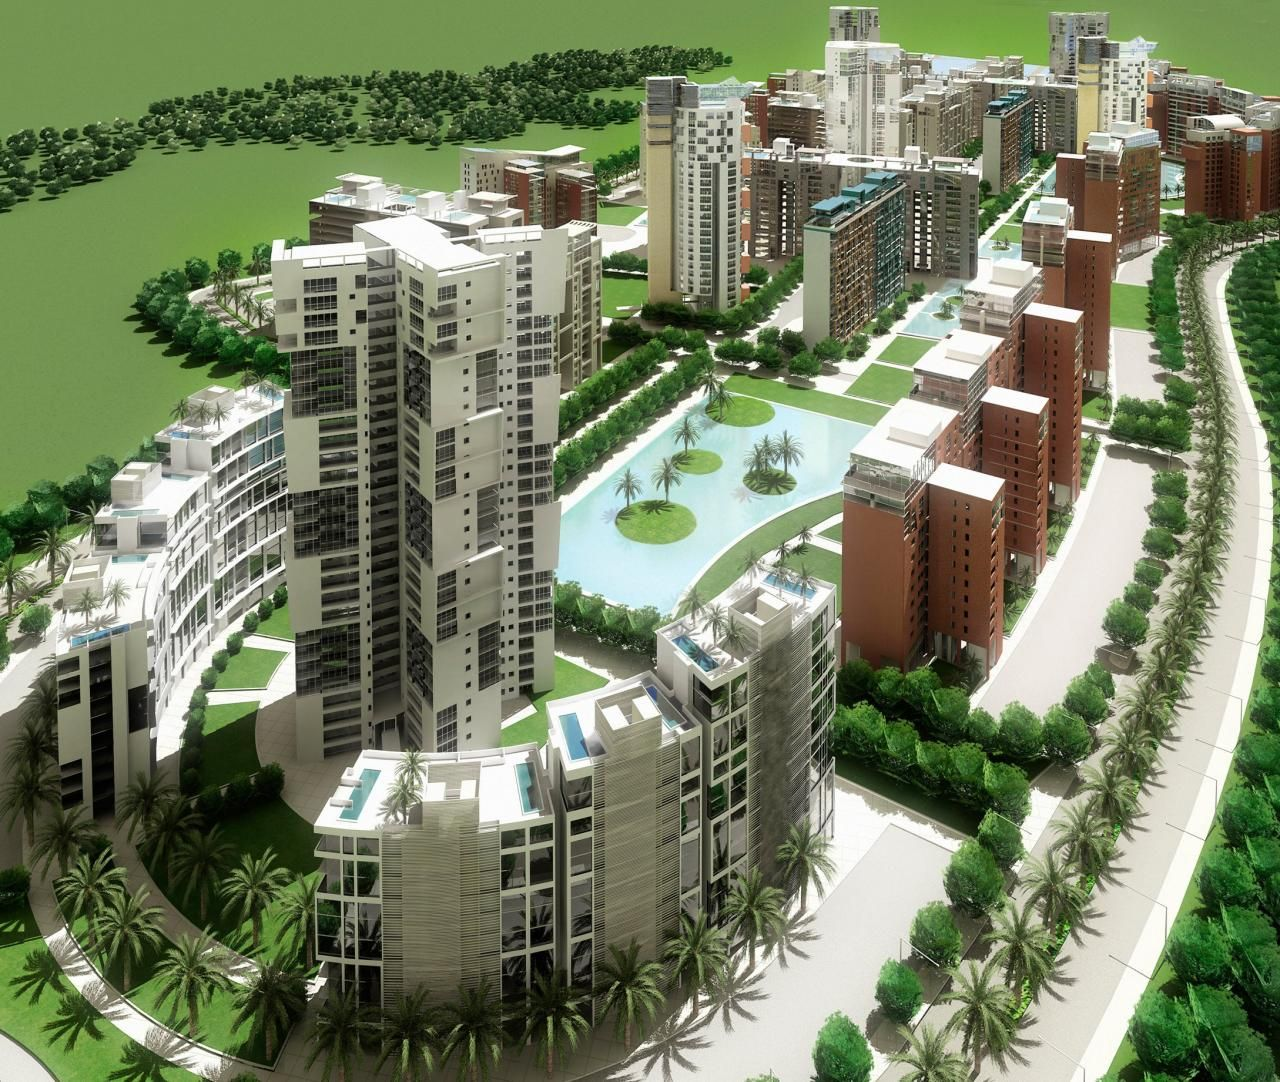 Tata group investments in real estate elyland investment company ltd.